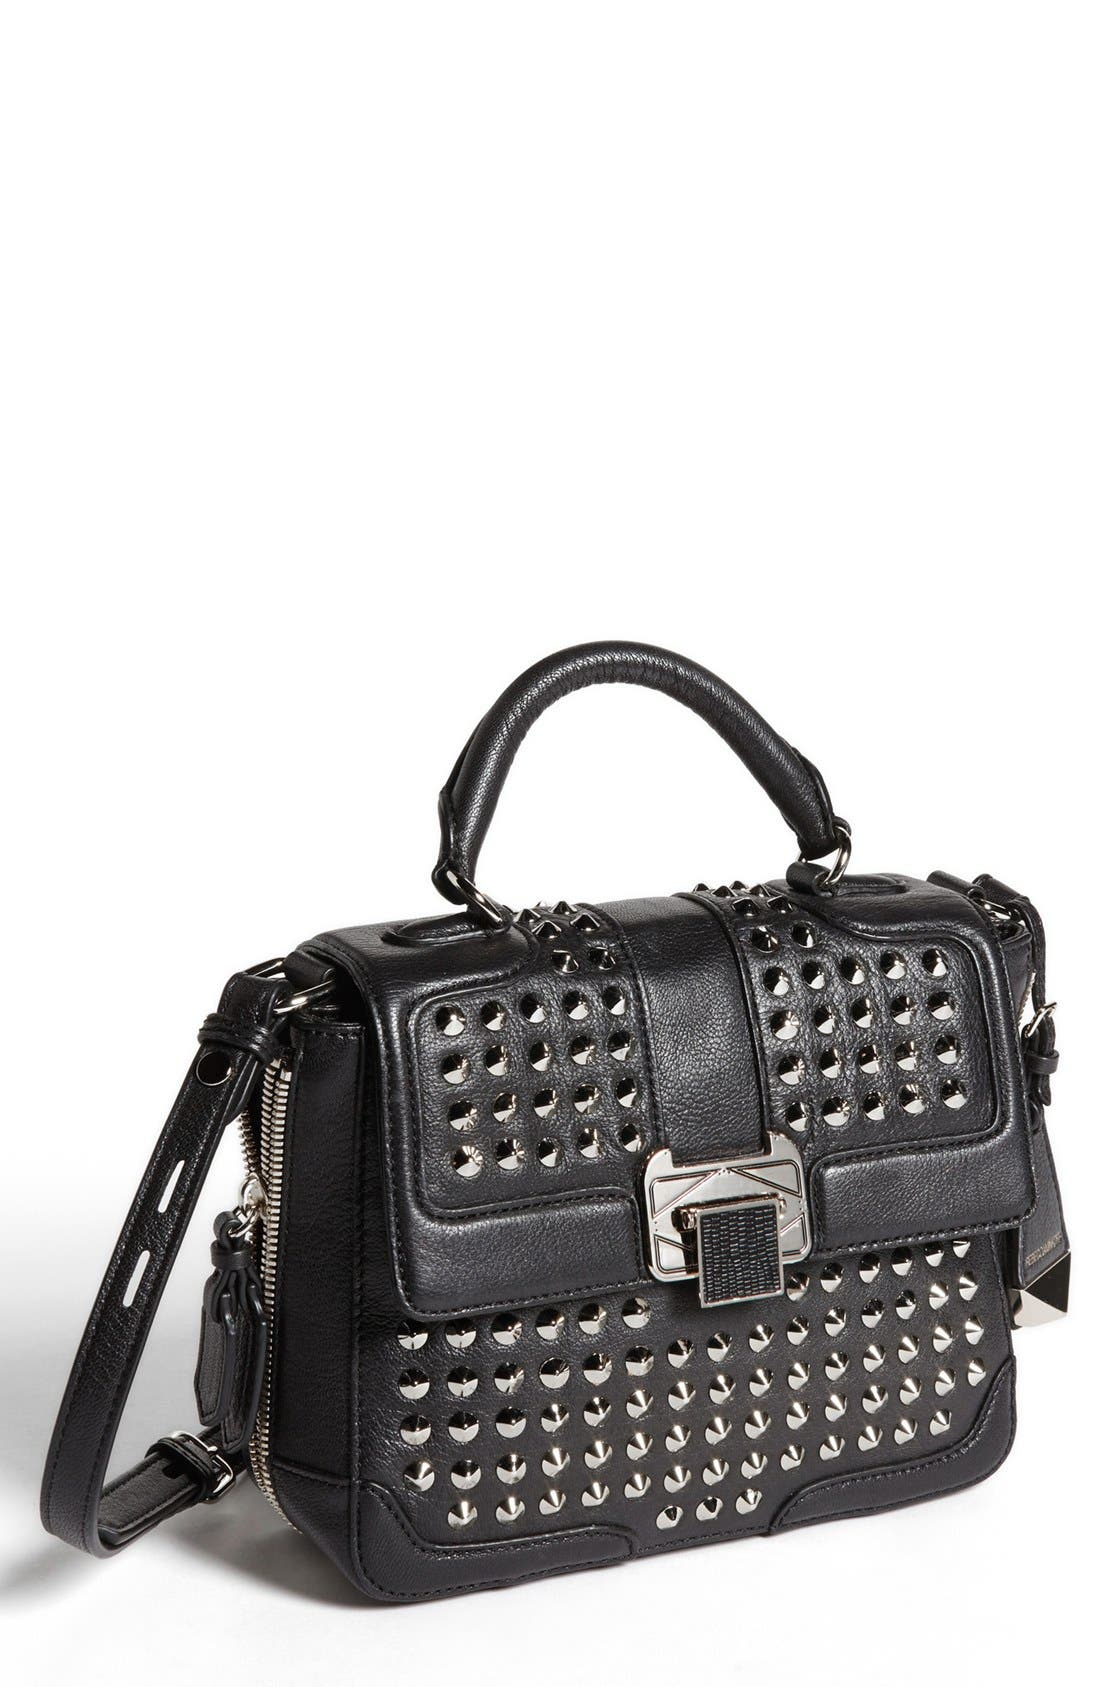 Alternate Image 1 Selected - Rebecca Minkoff 'Elle Mini with Studs' Crossbody Bag